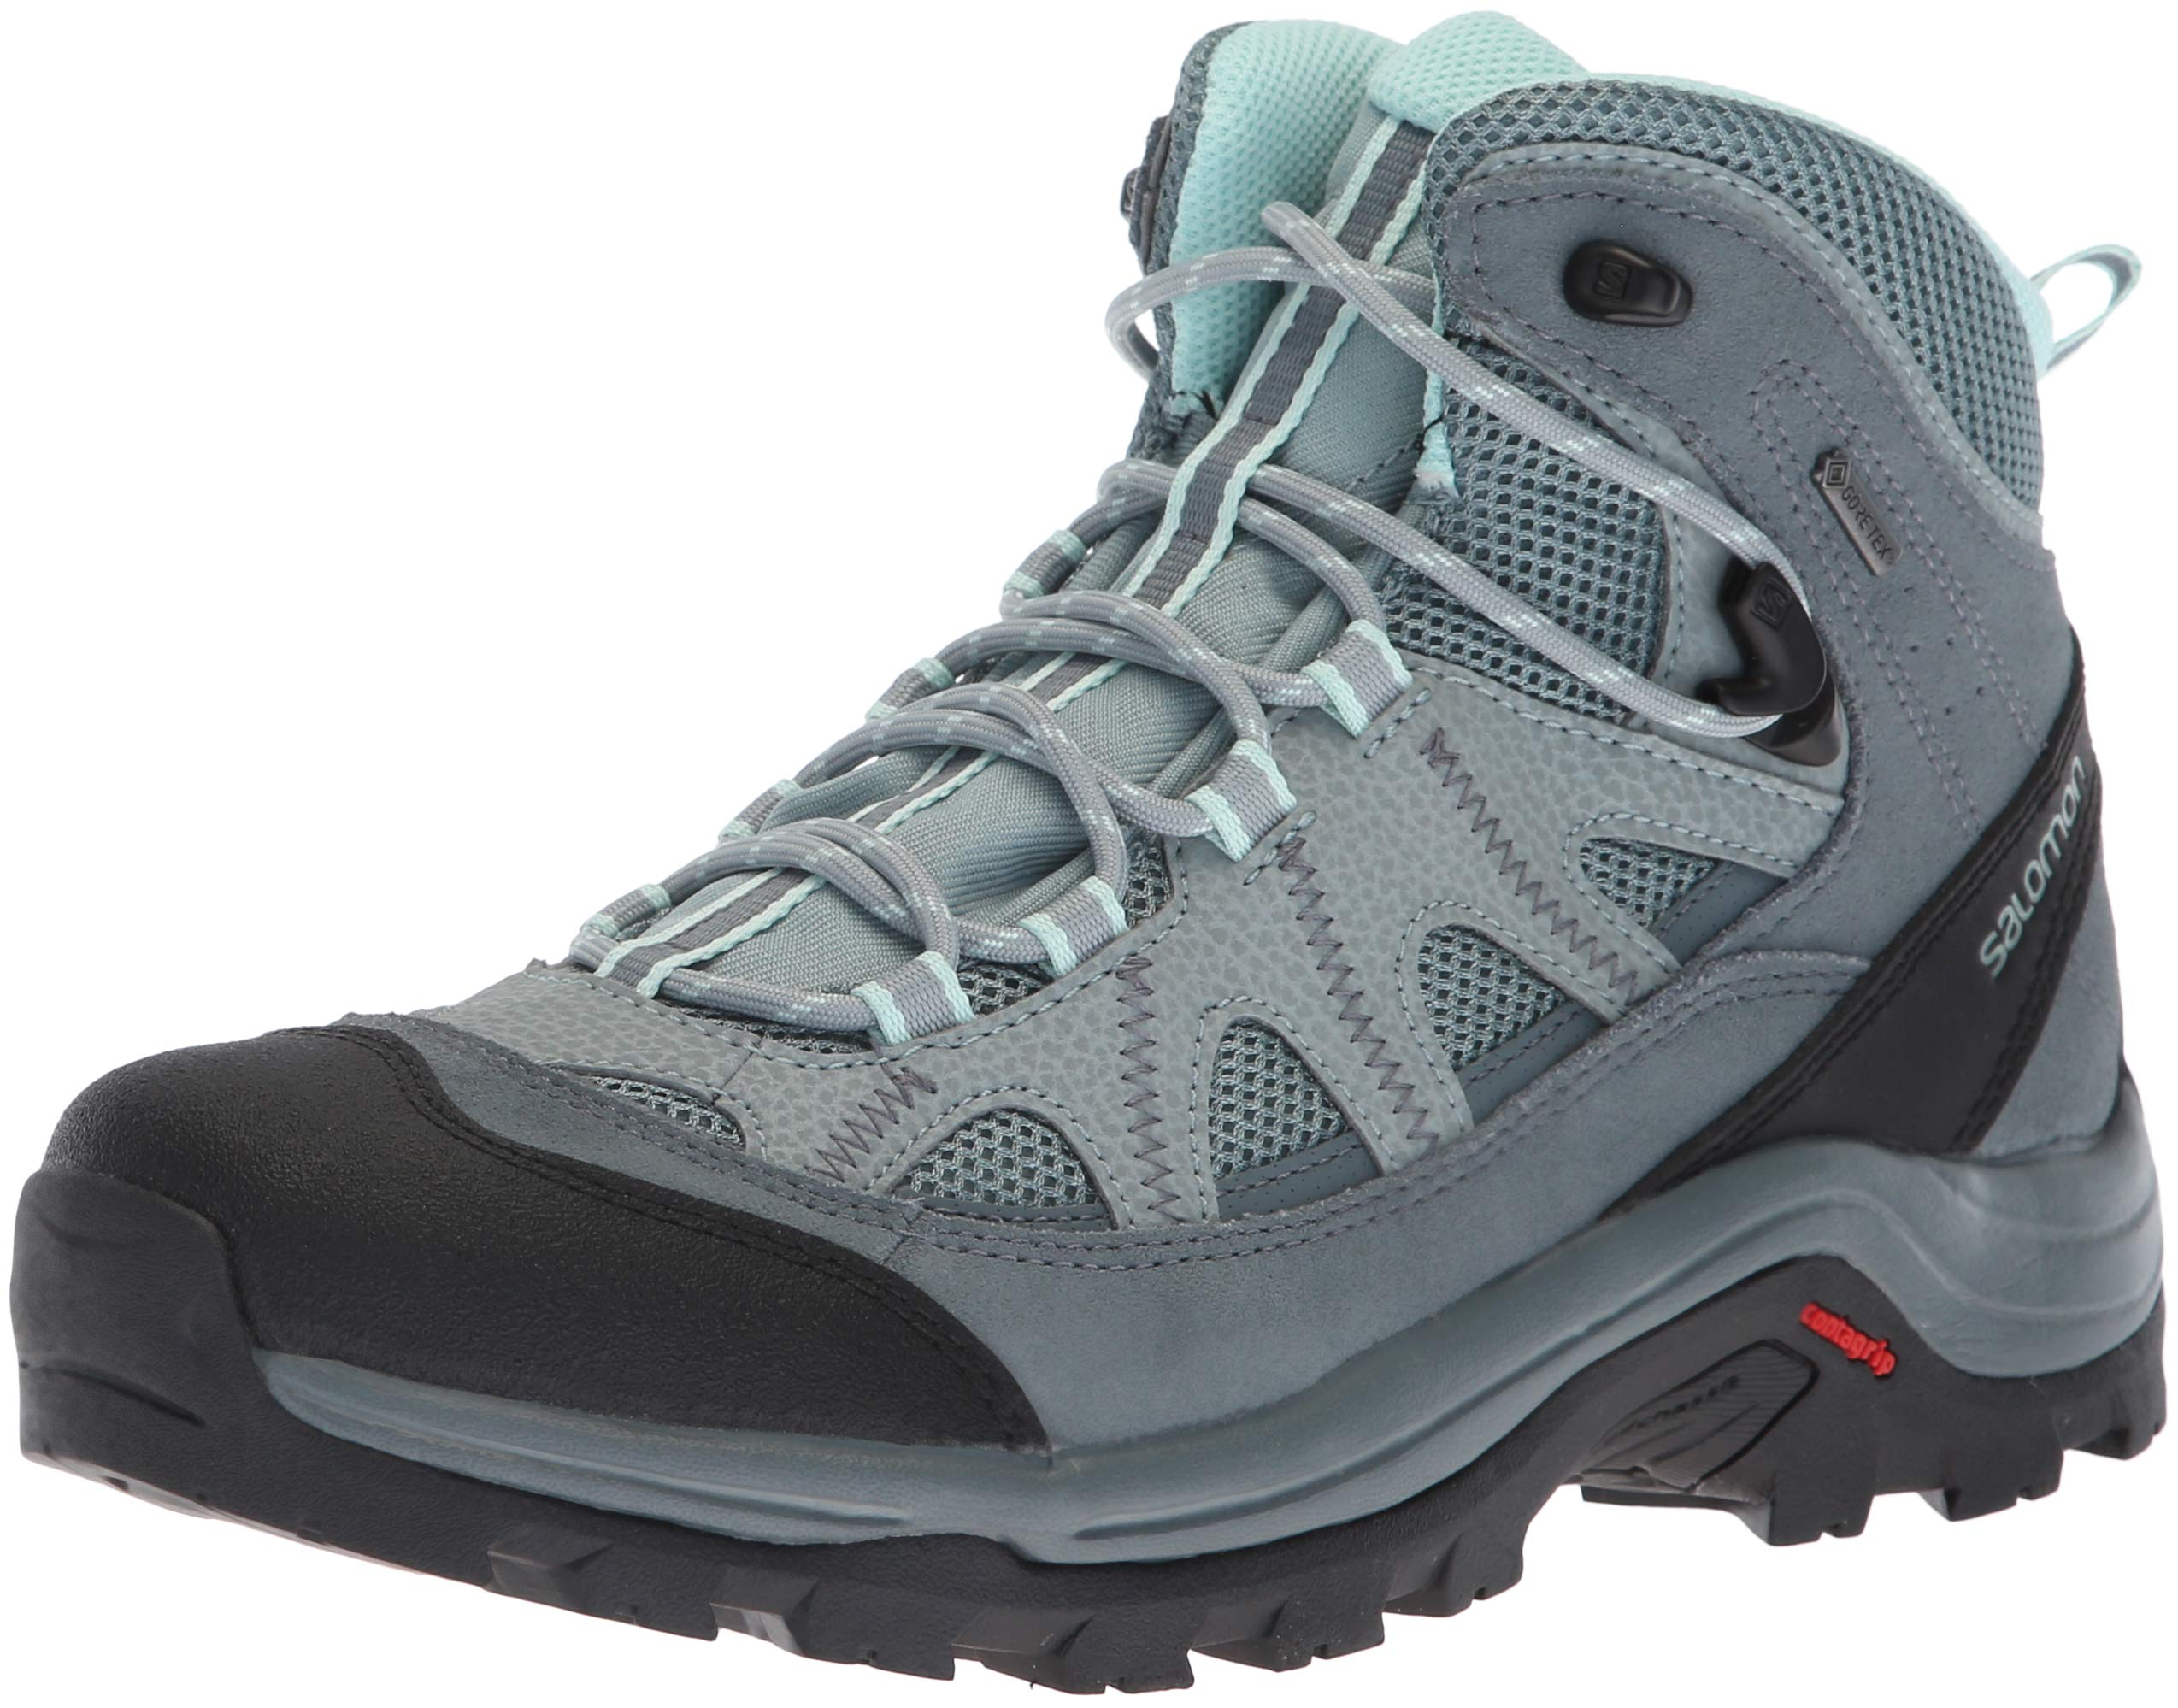 Salomon Women's Authentic LTR GTX W Backpacking Boot, Lead/Stormy Weather/Eggshell Blue, 6.5 B US